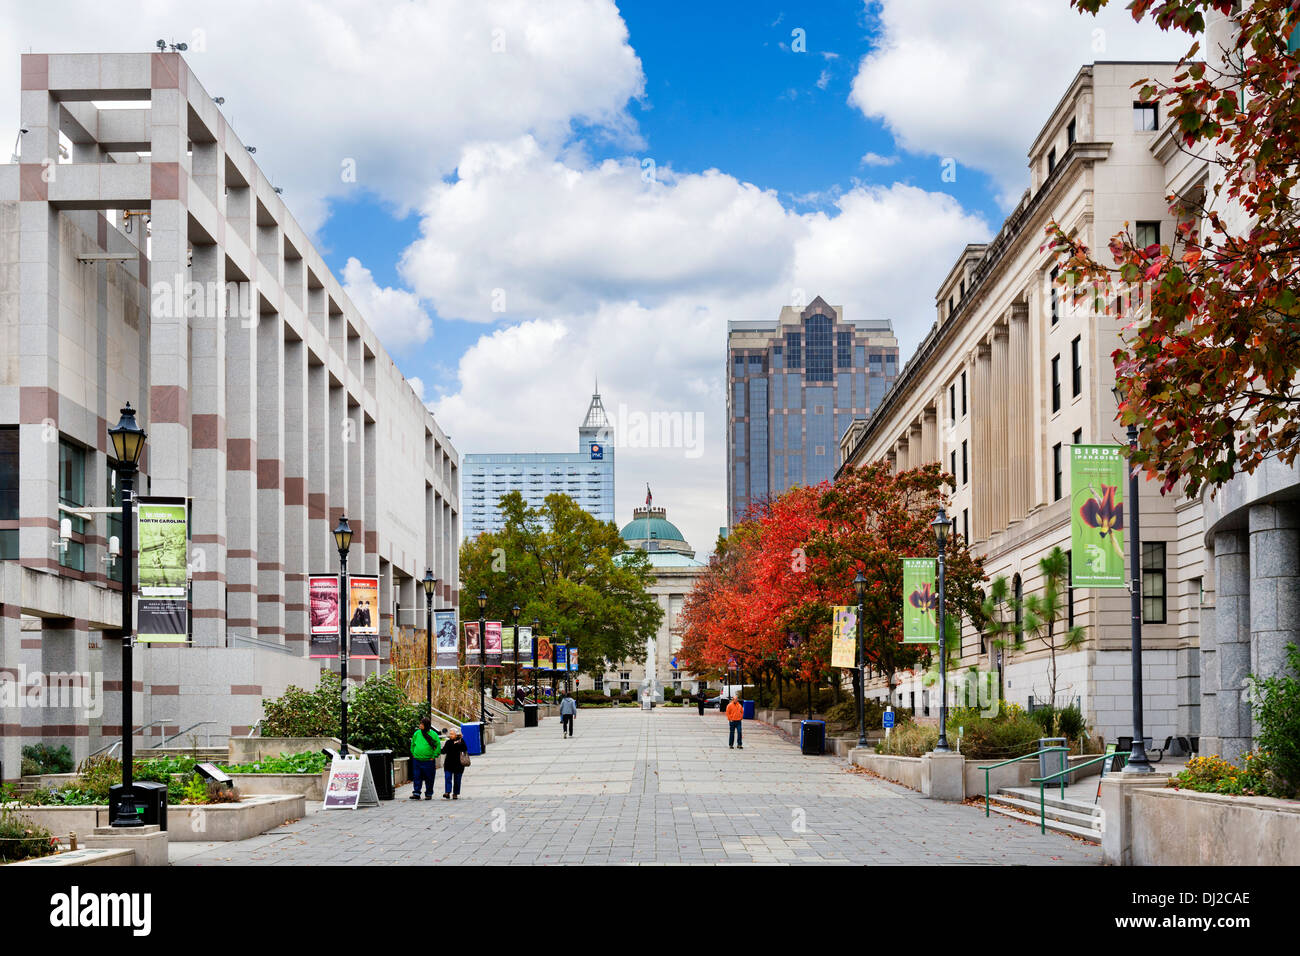 Museums and galleries on Bicentennial Plaza in downtown Raleigh, North Carolina, USA - Stock Image